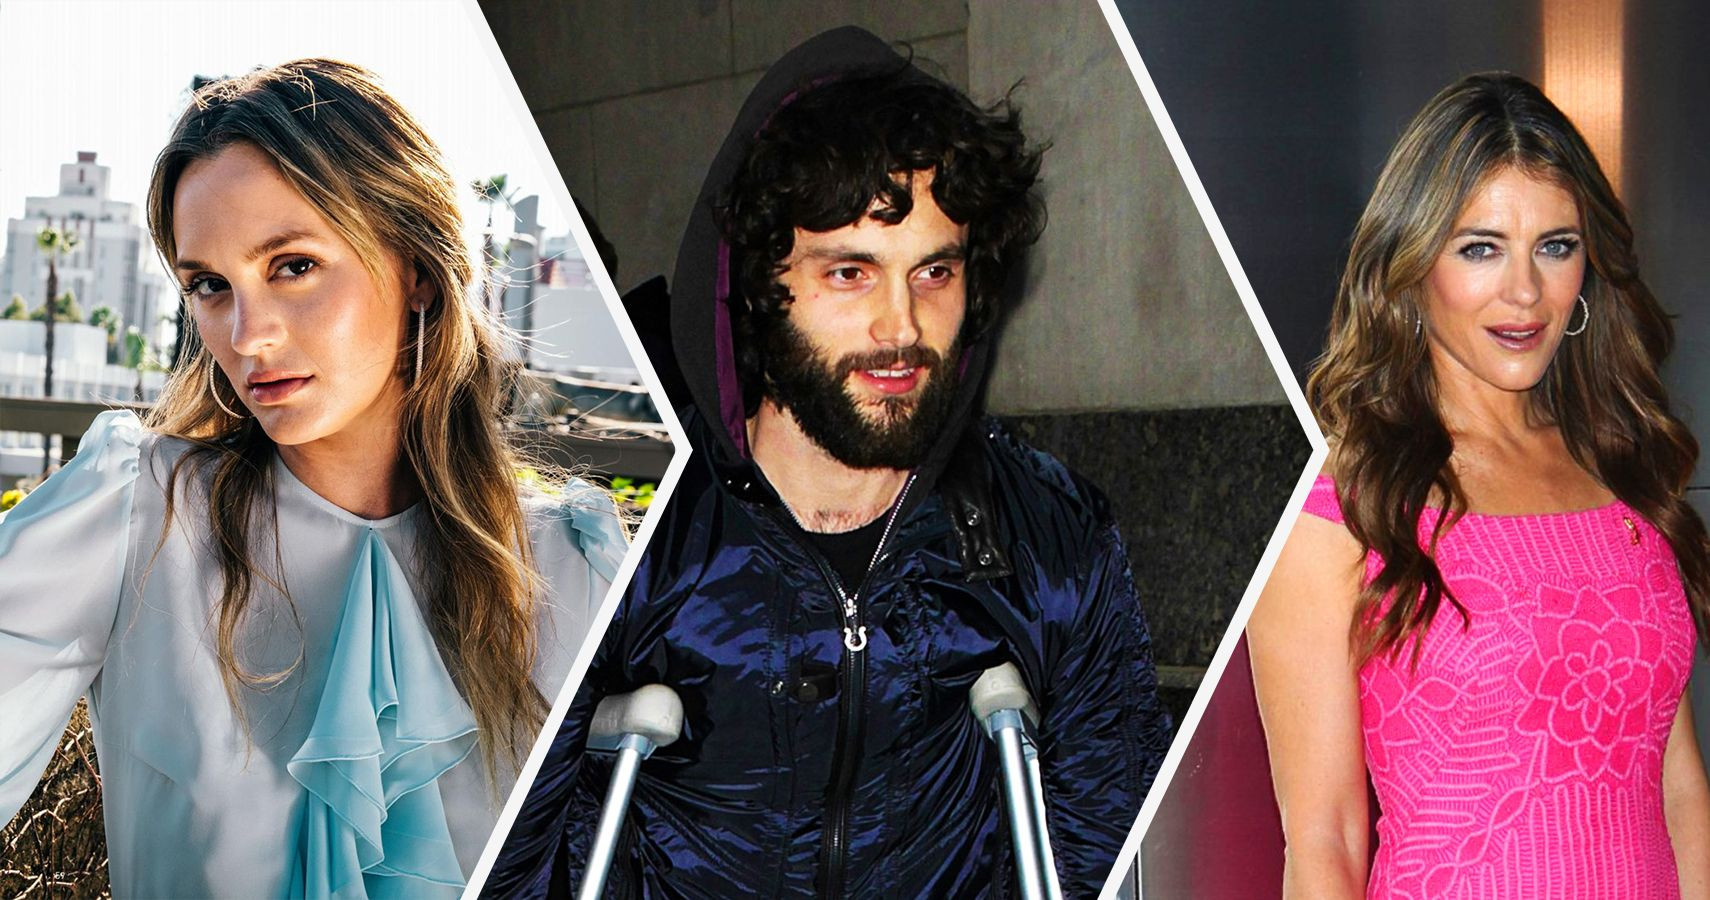 Who are the gossip girl stars hookup